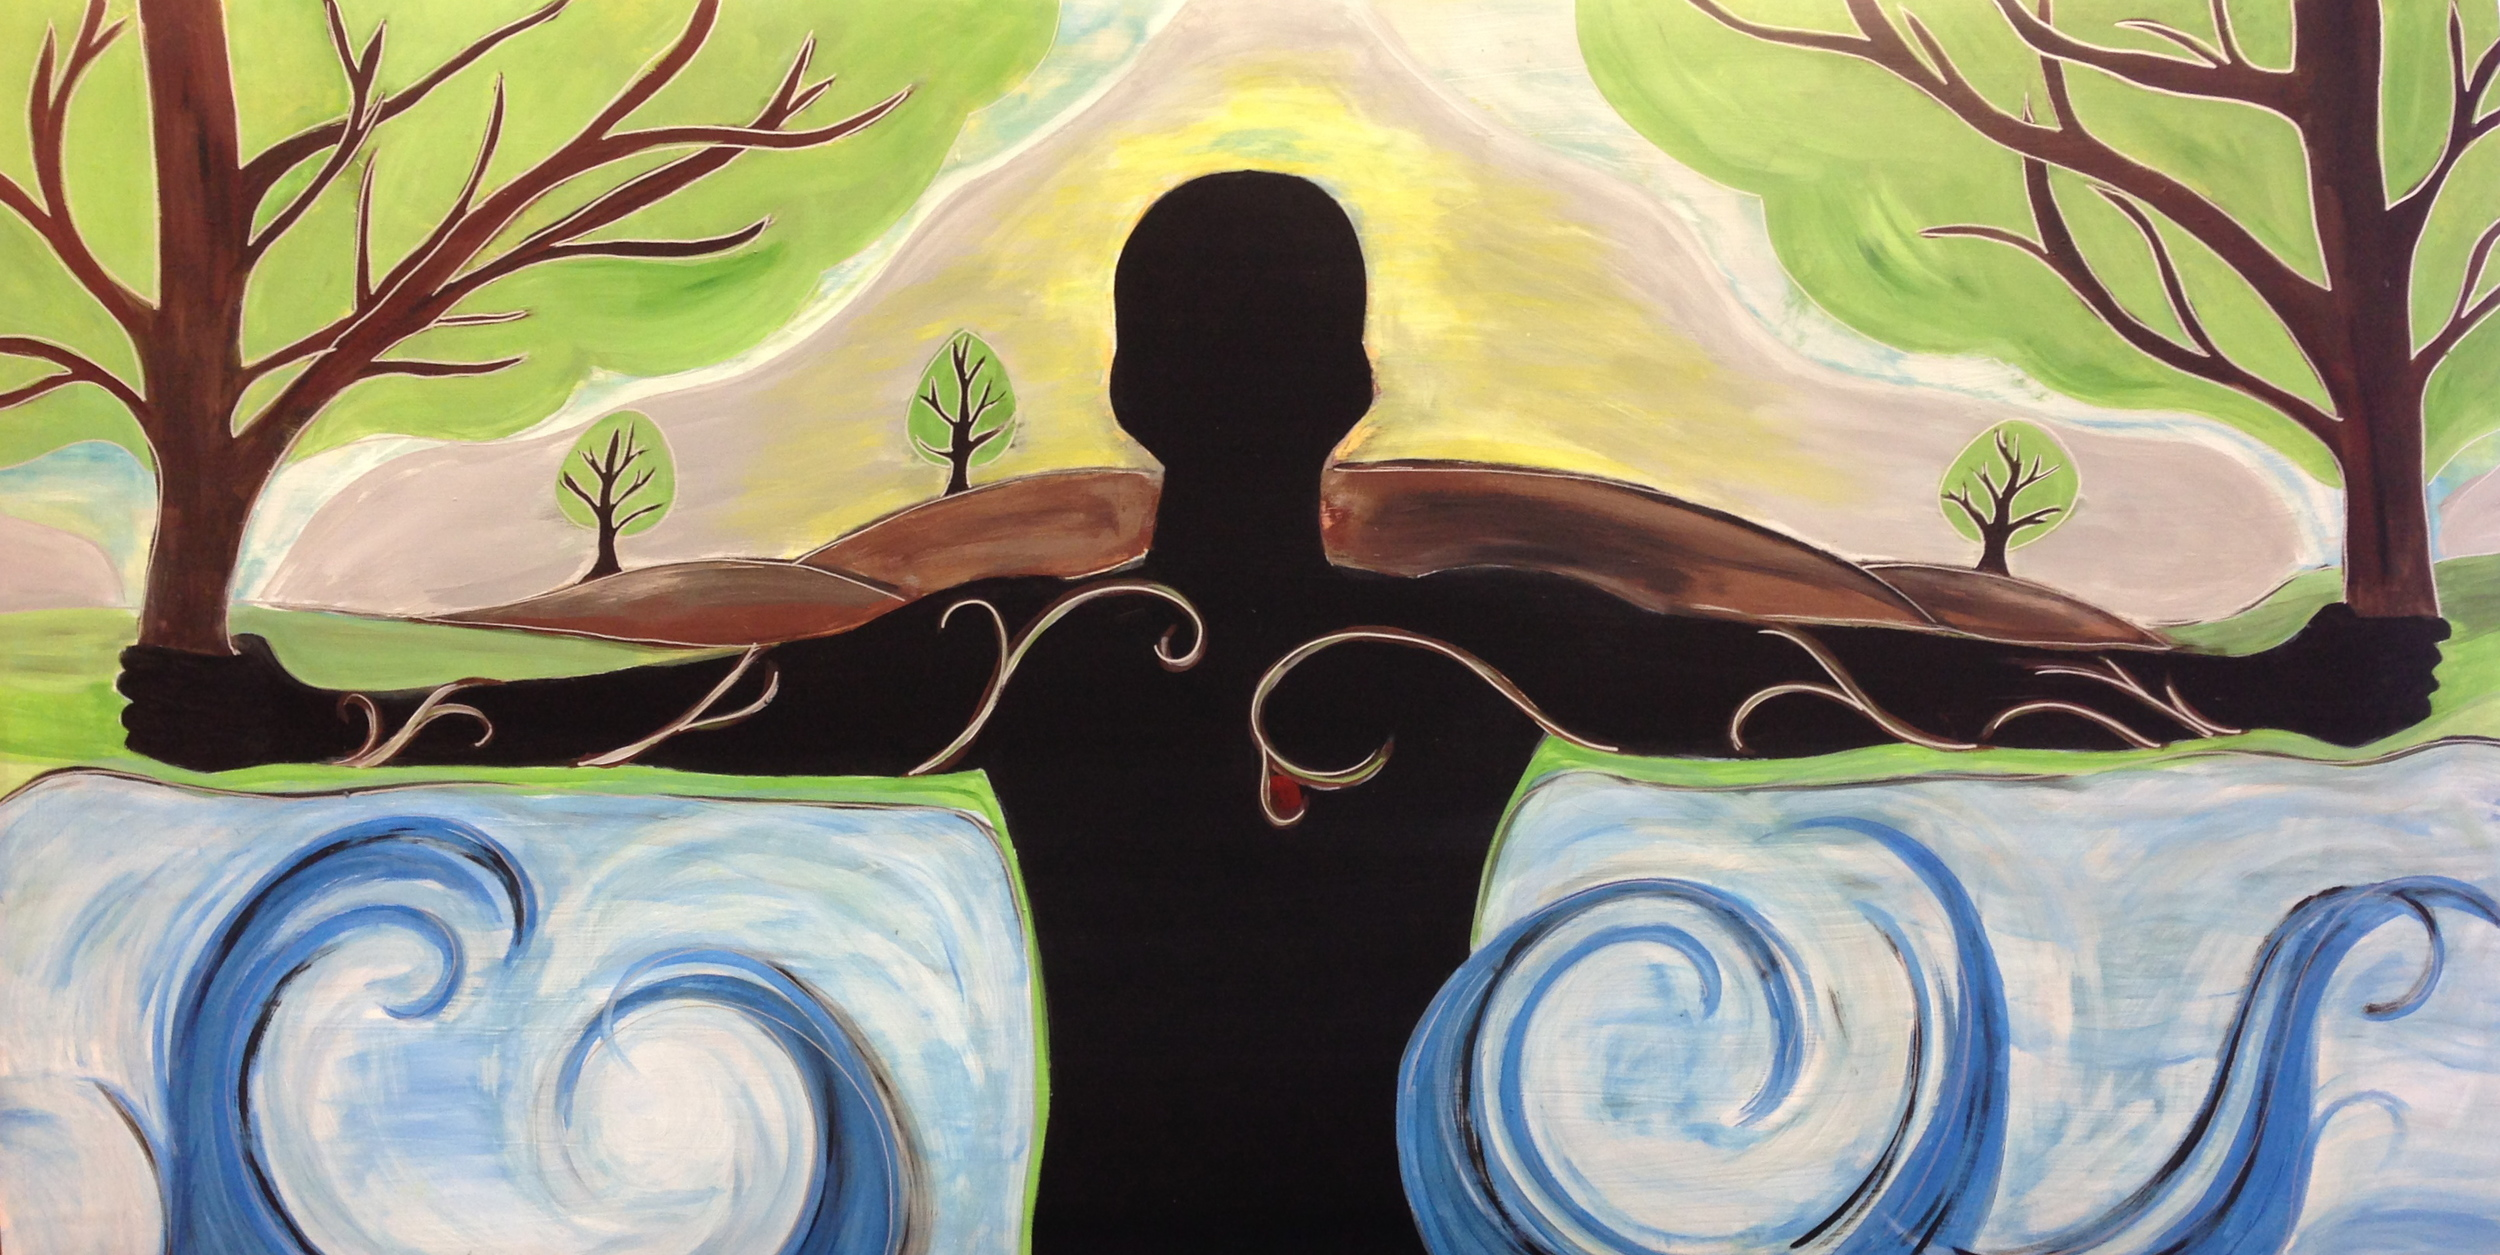 """This painting was inspired by a vision that was given to Apostle Todd many years ago. It depicts a man coming out of a river, arms outstretched, holding an oak tree in each hand. At the same time the painting began to come together, Stuart and I began to see several prophetic nuances unfold.                                  Normal     0                     false     false     false         EN-US     X-NONE     X-NONE                                                                                                                                                                                                                                                                                                                                                                                                                                                                                                                                                                                                                                                                                                               /* Style Definitions */ table.MsoNormalTable {mso-style-name:""""Table Normal""""; mso-tstyle-rowband-size:0; mso-tstyle-colband-size:0; mso-style-noshow:yes; mso-style-priority:99; mso-style-parent:""""""""; mso-padding-alt:0in 5.4pt 0in 5.4pt; mso-para-margin:0in; mso-para-margin-bottom:.0001pt; mso-pagination:widow-orphan; font-size:10.0pt; font-family:""""Times New Roman"""";}                The tree in the right hand is representative of the office of the apostolic, while the tree in the left represents the office of the prophetic. The roots of the trees are intertwined with the man as a way of showing both the apostolic and prophetic being birthed in his heart by the Spirit. He is bringing these trees to a hill country that is void of these two anointings. In doing so, the land will be complete, as the five-fold--apostle, prophet, pastor, teacher, and evangelist-- are planted together again a"""